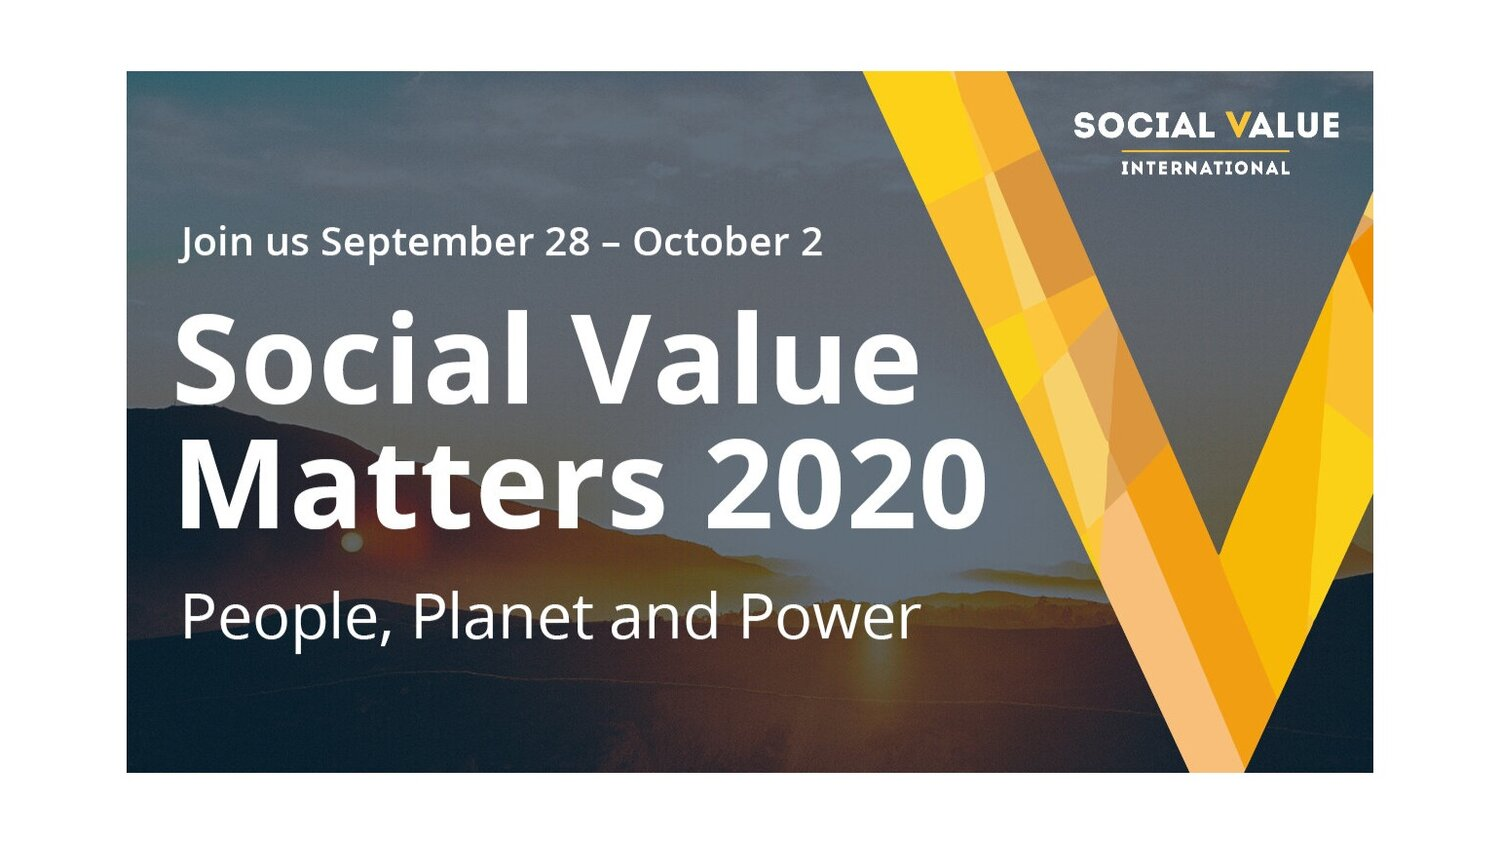 Social Value Matters 2020: People, Planet & Power